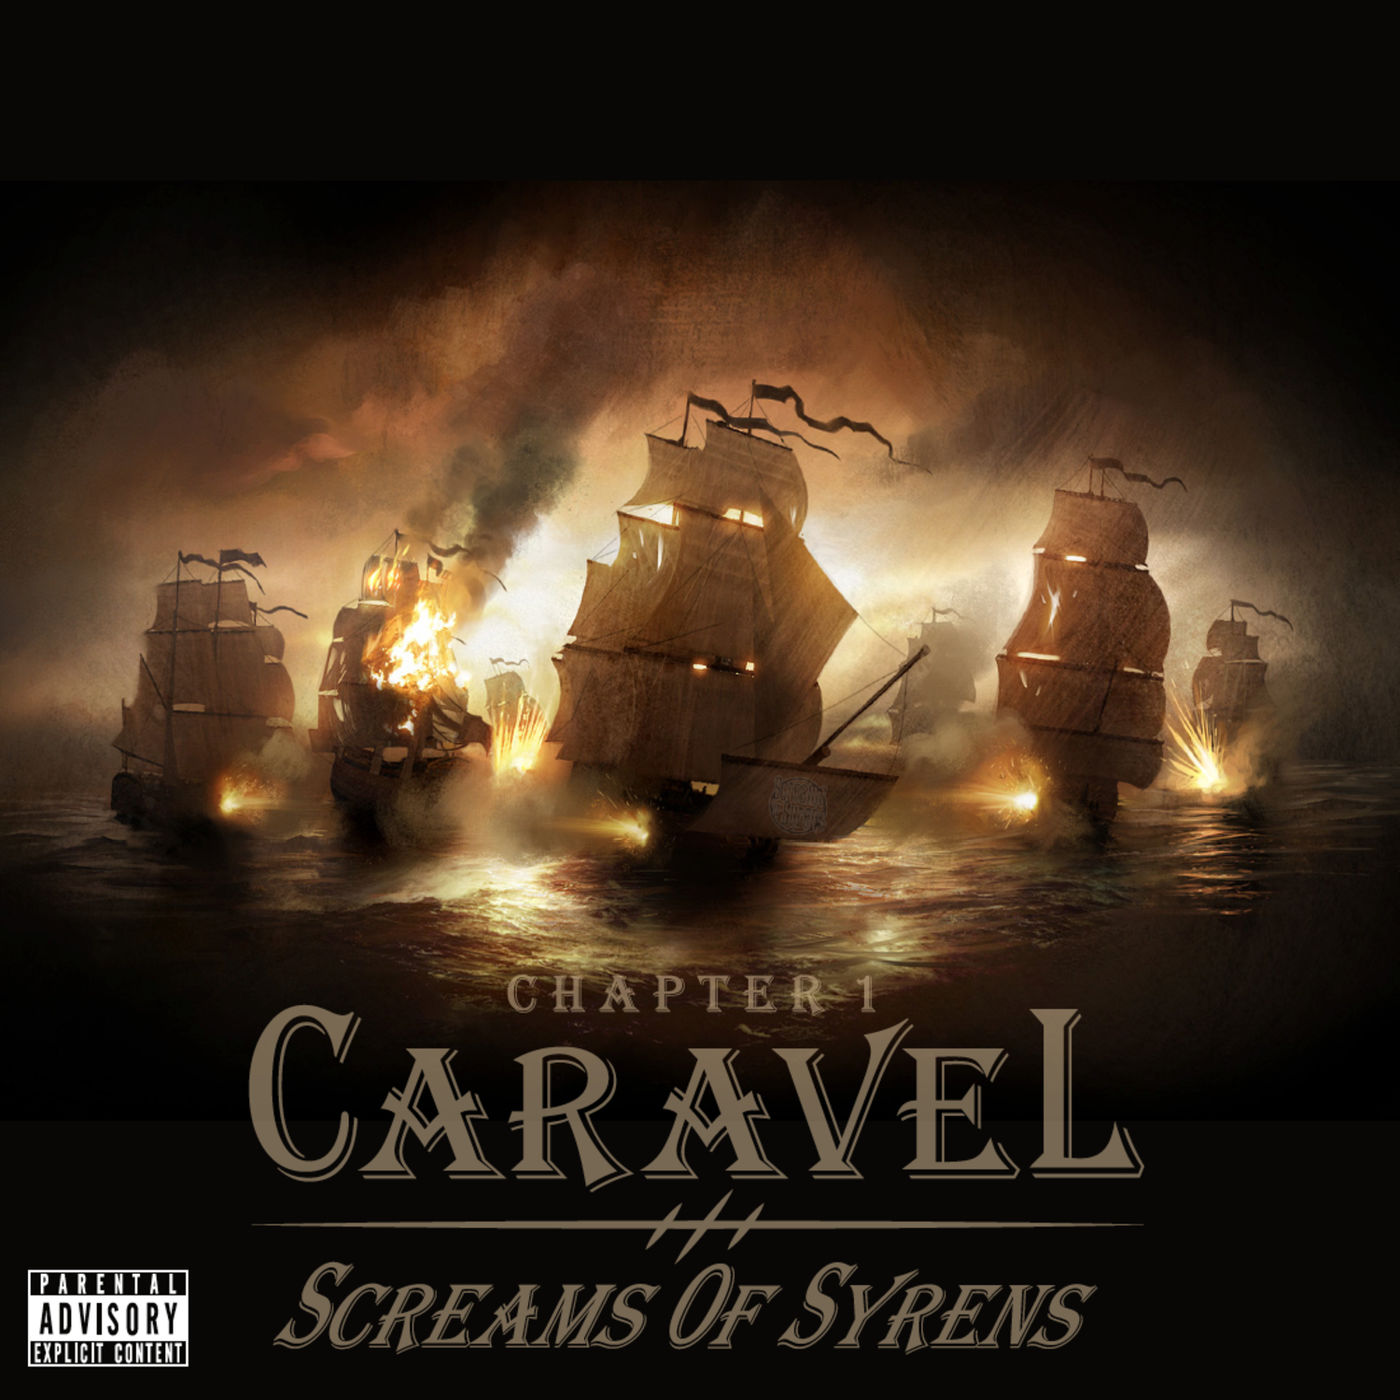 Screams of Syrens - Chapter 1: Caravel [EP] (2015)